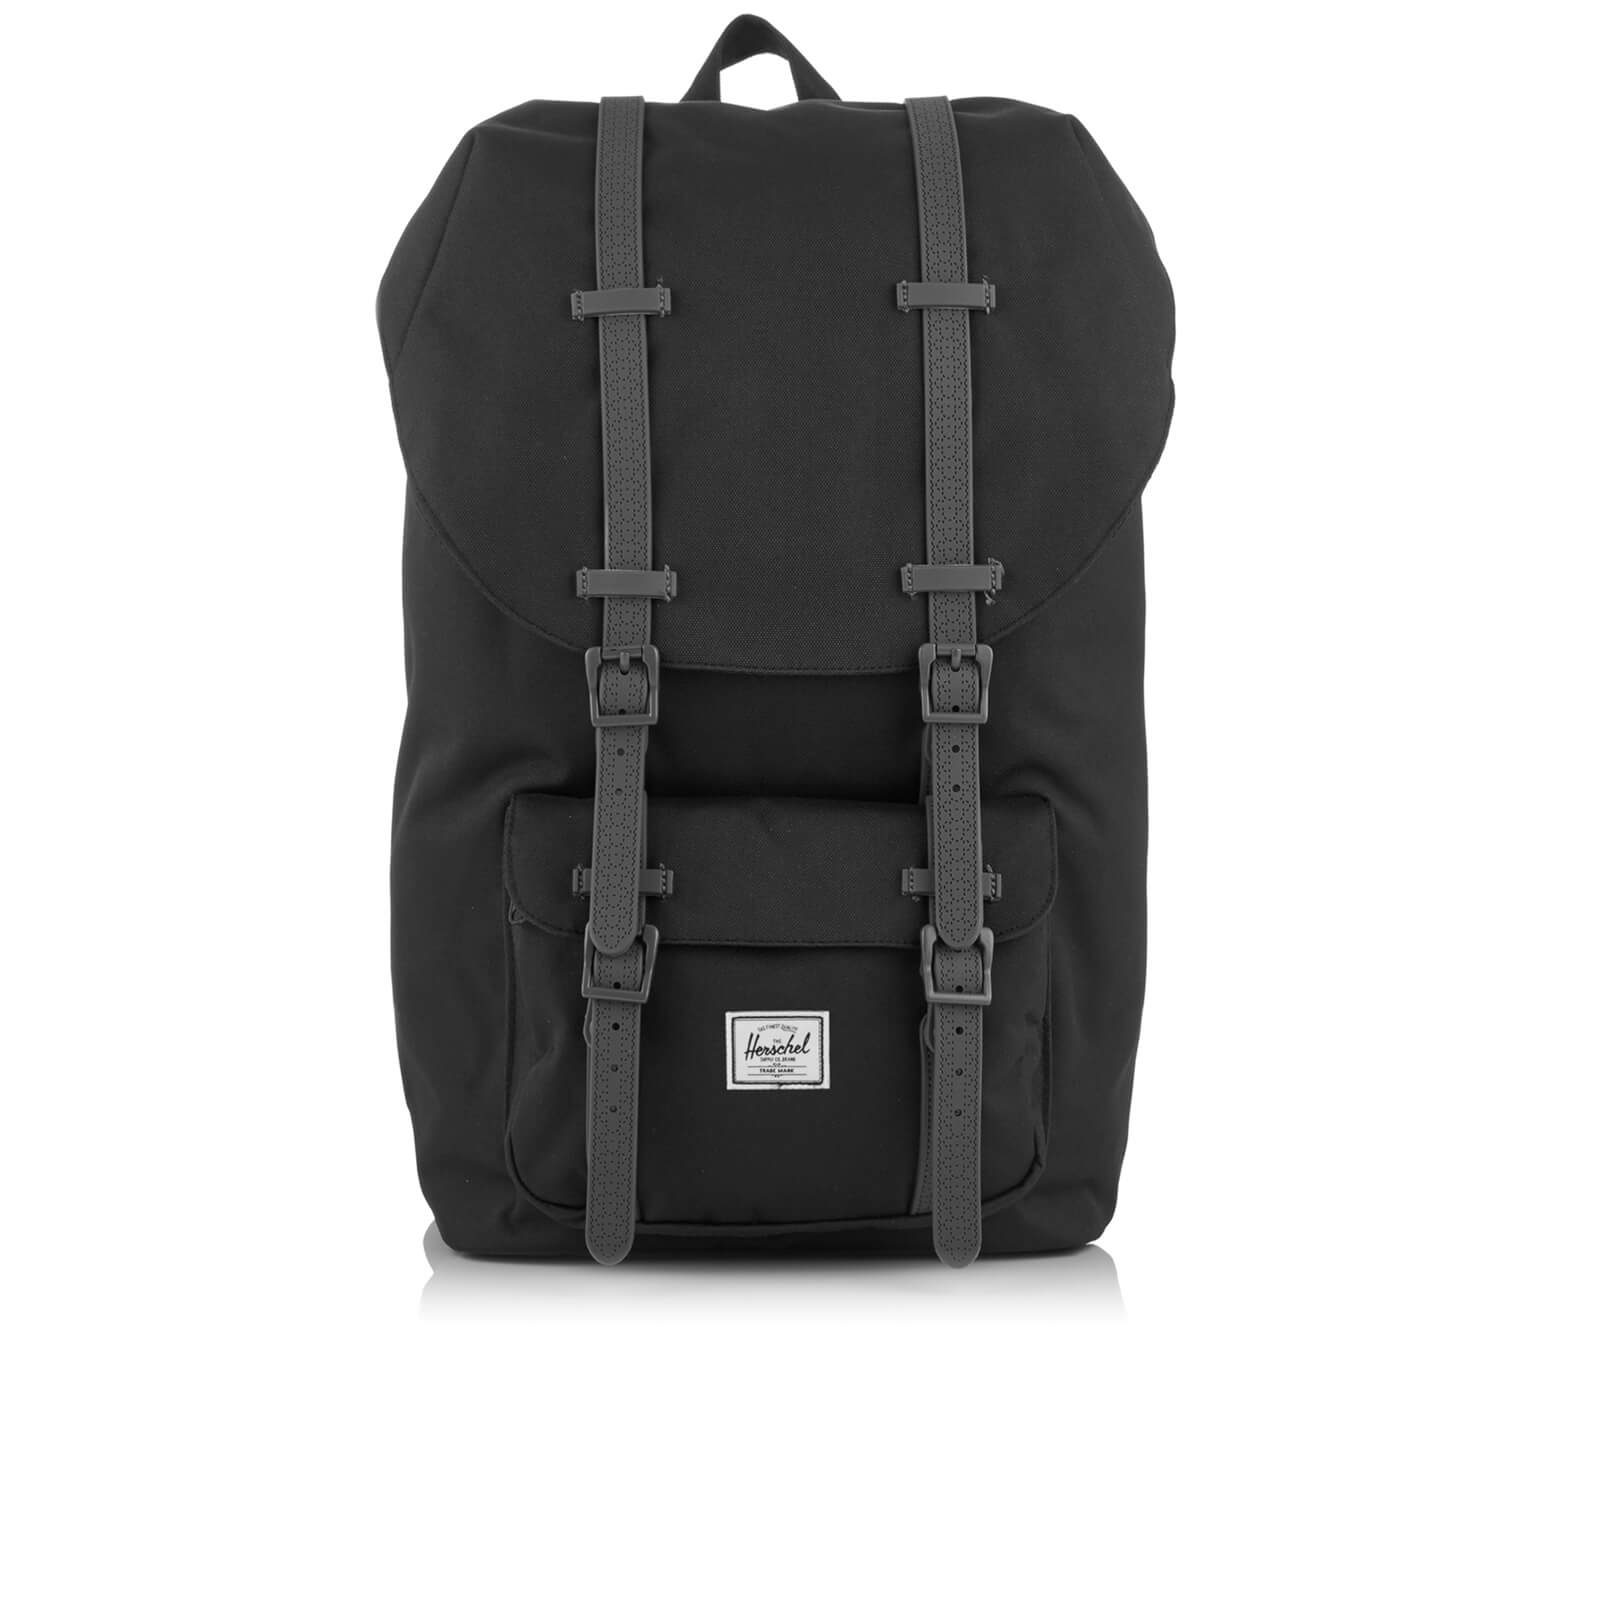 74a5691cde Herschel Supply Co. Little America Backpack - Black Charcoal Debossed  Rubber - Free UK Delivery over £50